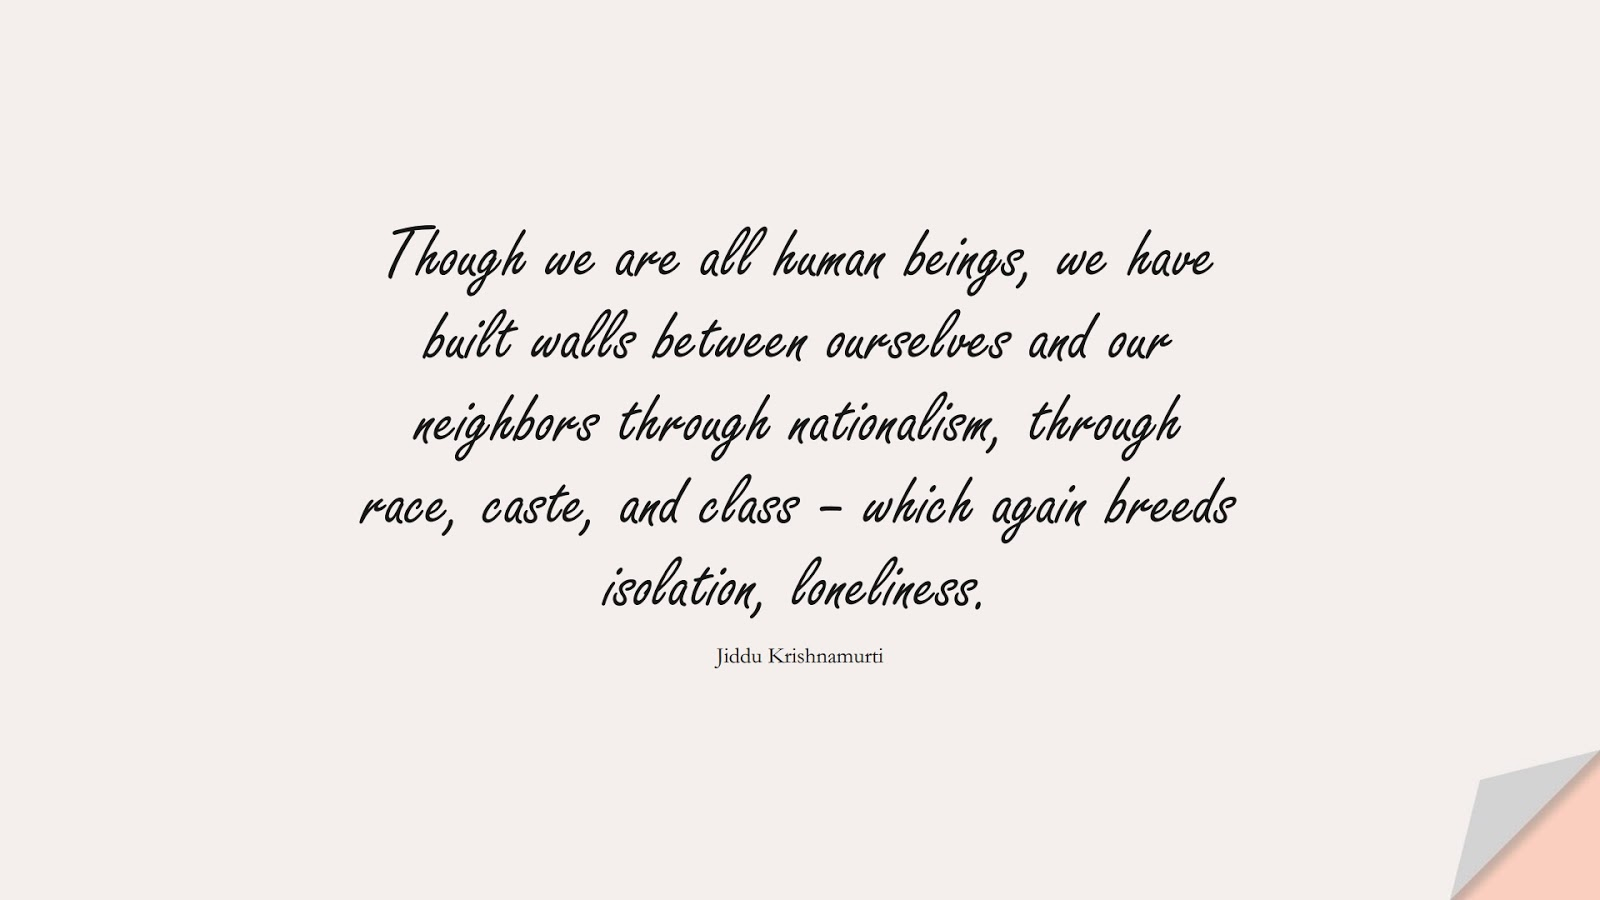 Though we are all human beings, we have built walls between ourselves and our neighbors through nationalism, through race, caste, and class – which again breeds isolation, loneliness. (Jiddu Krishnamurti);  #HumanityQuotes